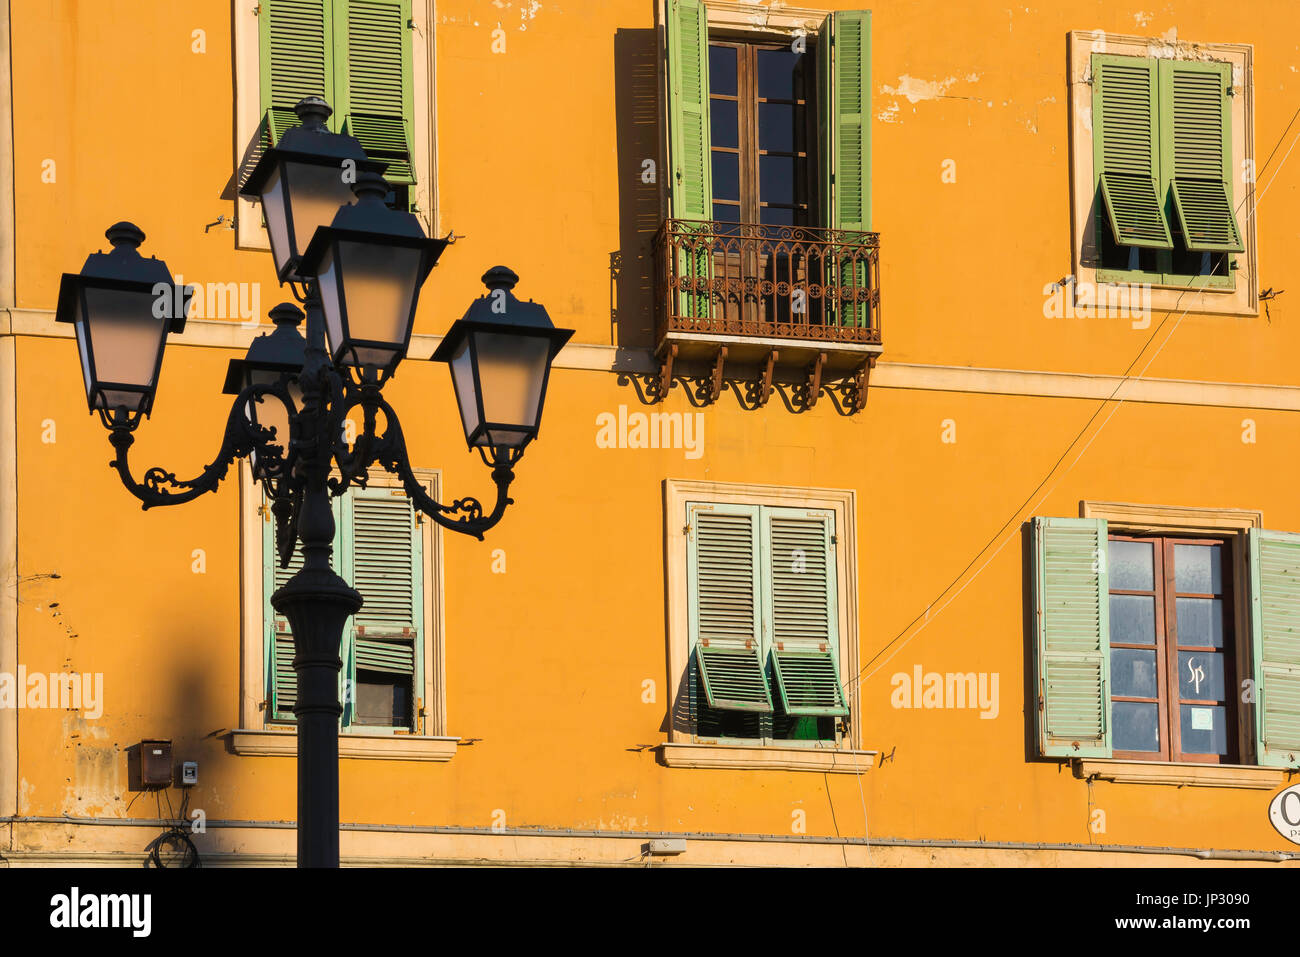 Sardinia colour house, colourful wall of a house in the Piazza d'Italia at sunset, Sassari, Sardinia. - Stock Image